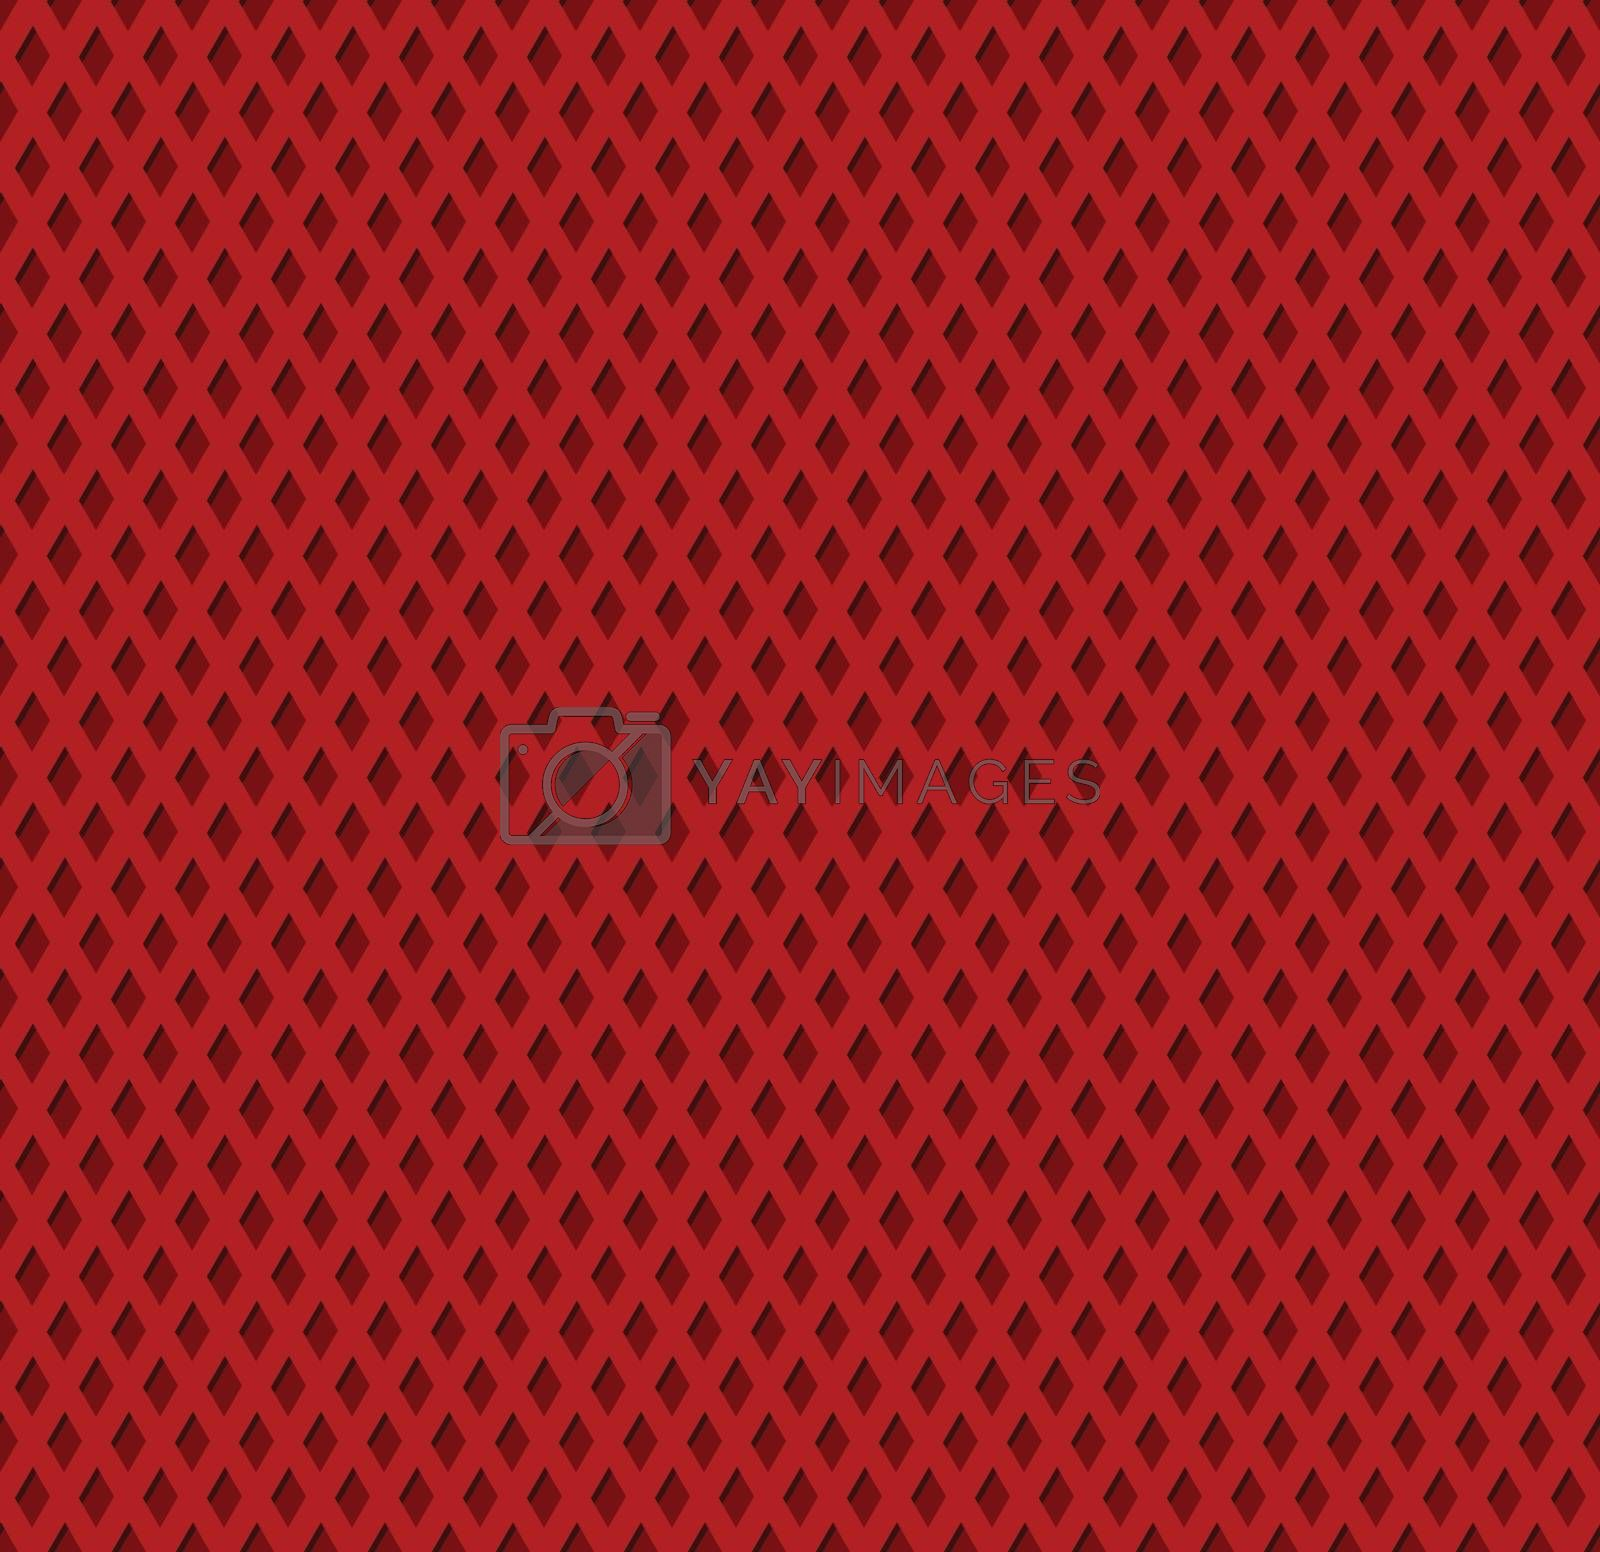 Red diamond shaped tileable seamless textured background